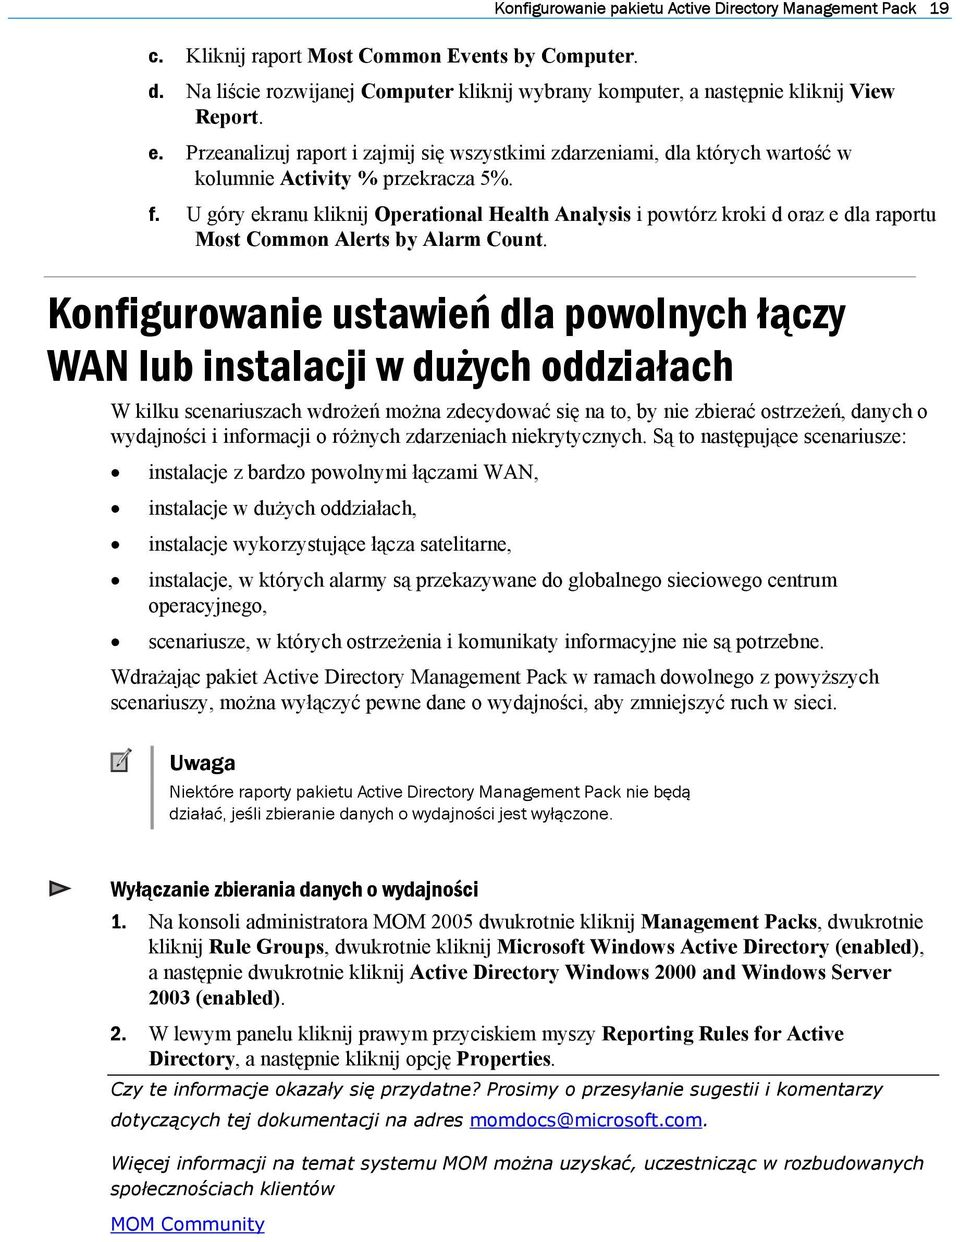 U góry ekranu kliknij Operational Health Analysis i powtórz kroki d oraz e dla raportu Most Common Alerts by Alarm Count.